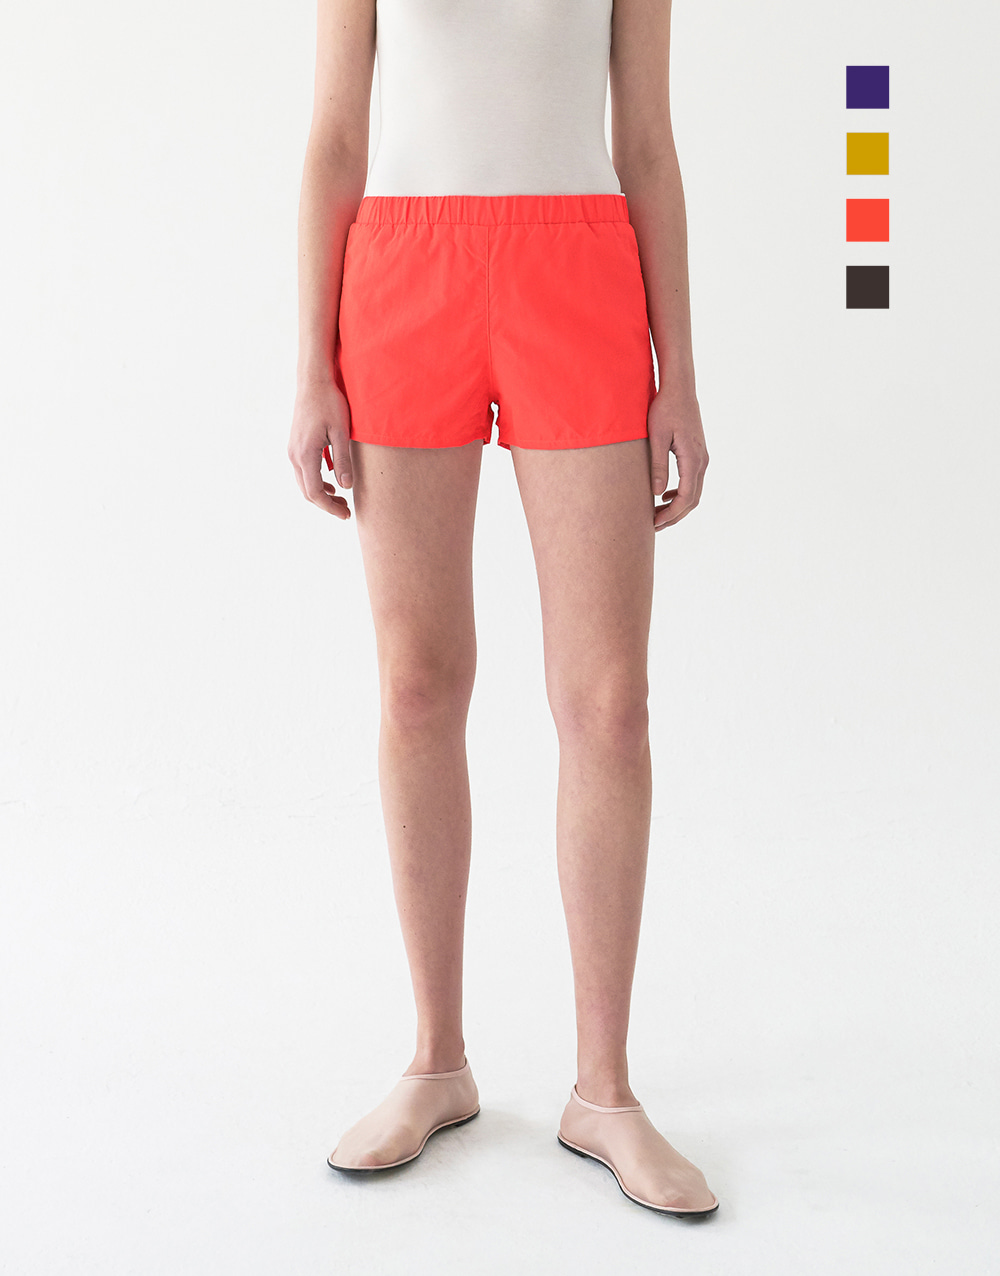 GBH APPAREL ADULT  Swim Pants  (4 COLORS)